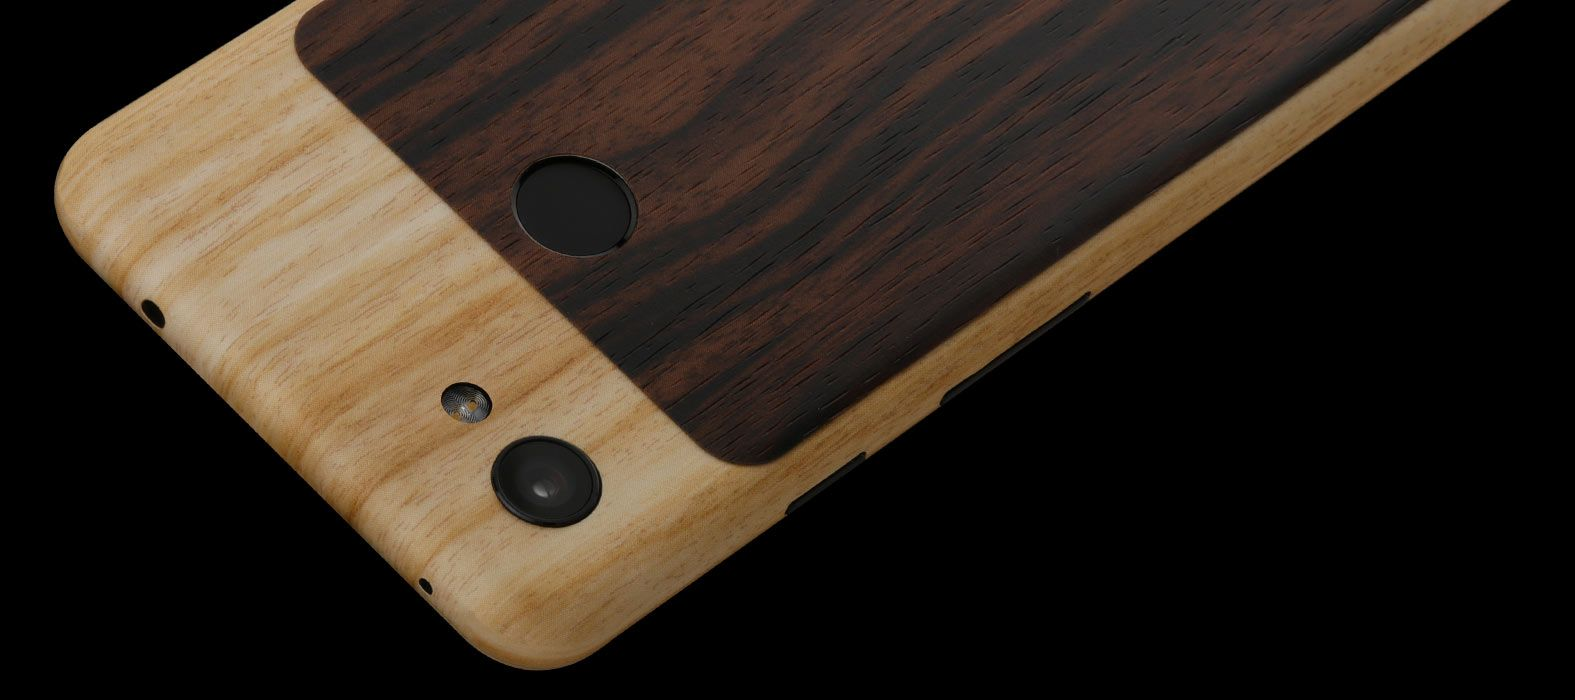 Pixel 3a Bamboo With Ebony Skins